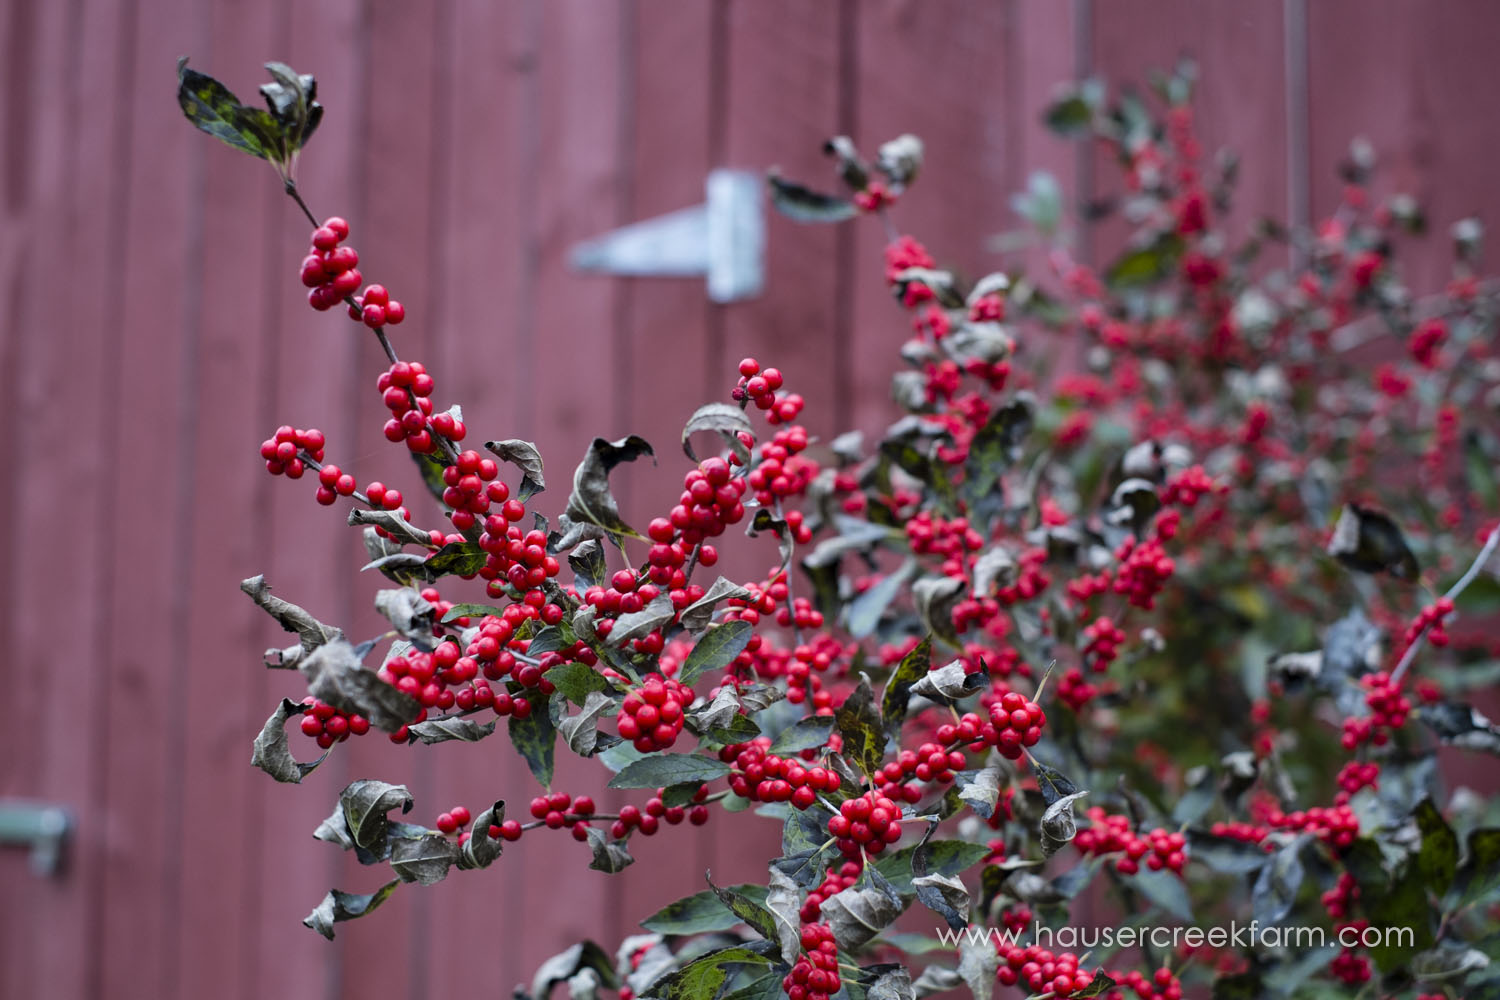 holly-berries-in-front-of-red-barn-wall-photo-by-chris-fowler-1174color.jpg